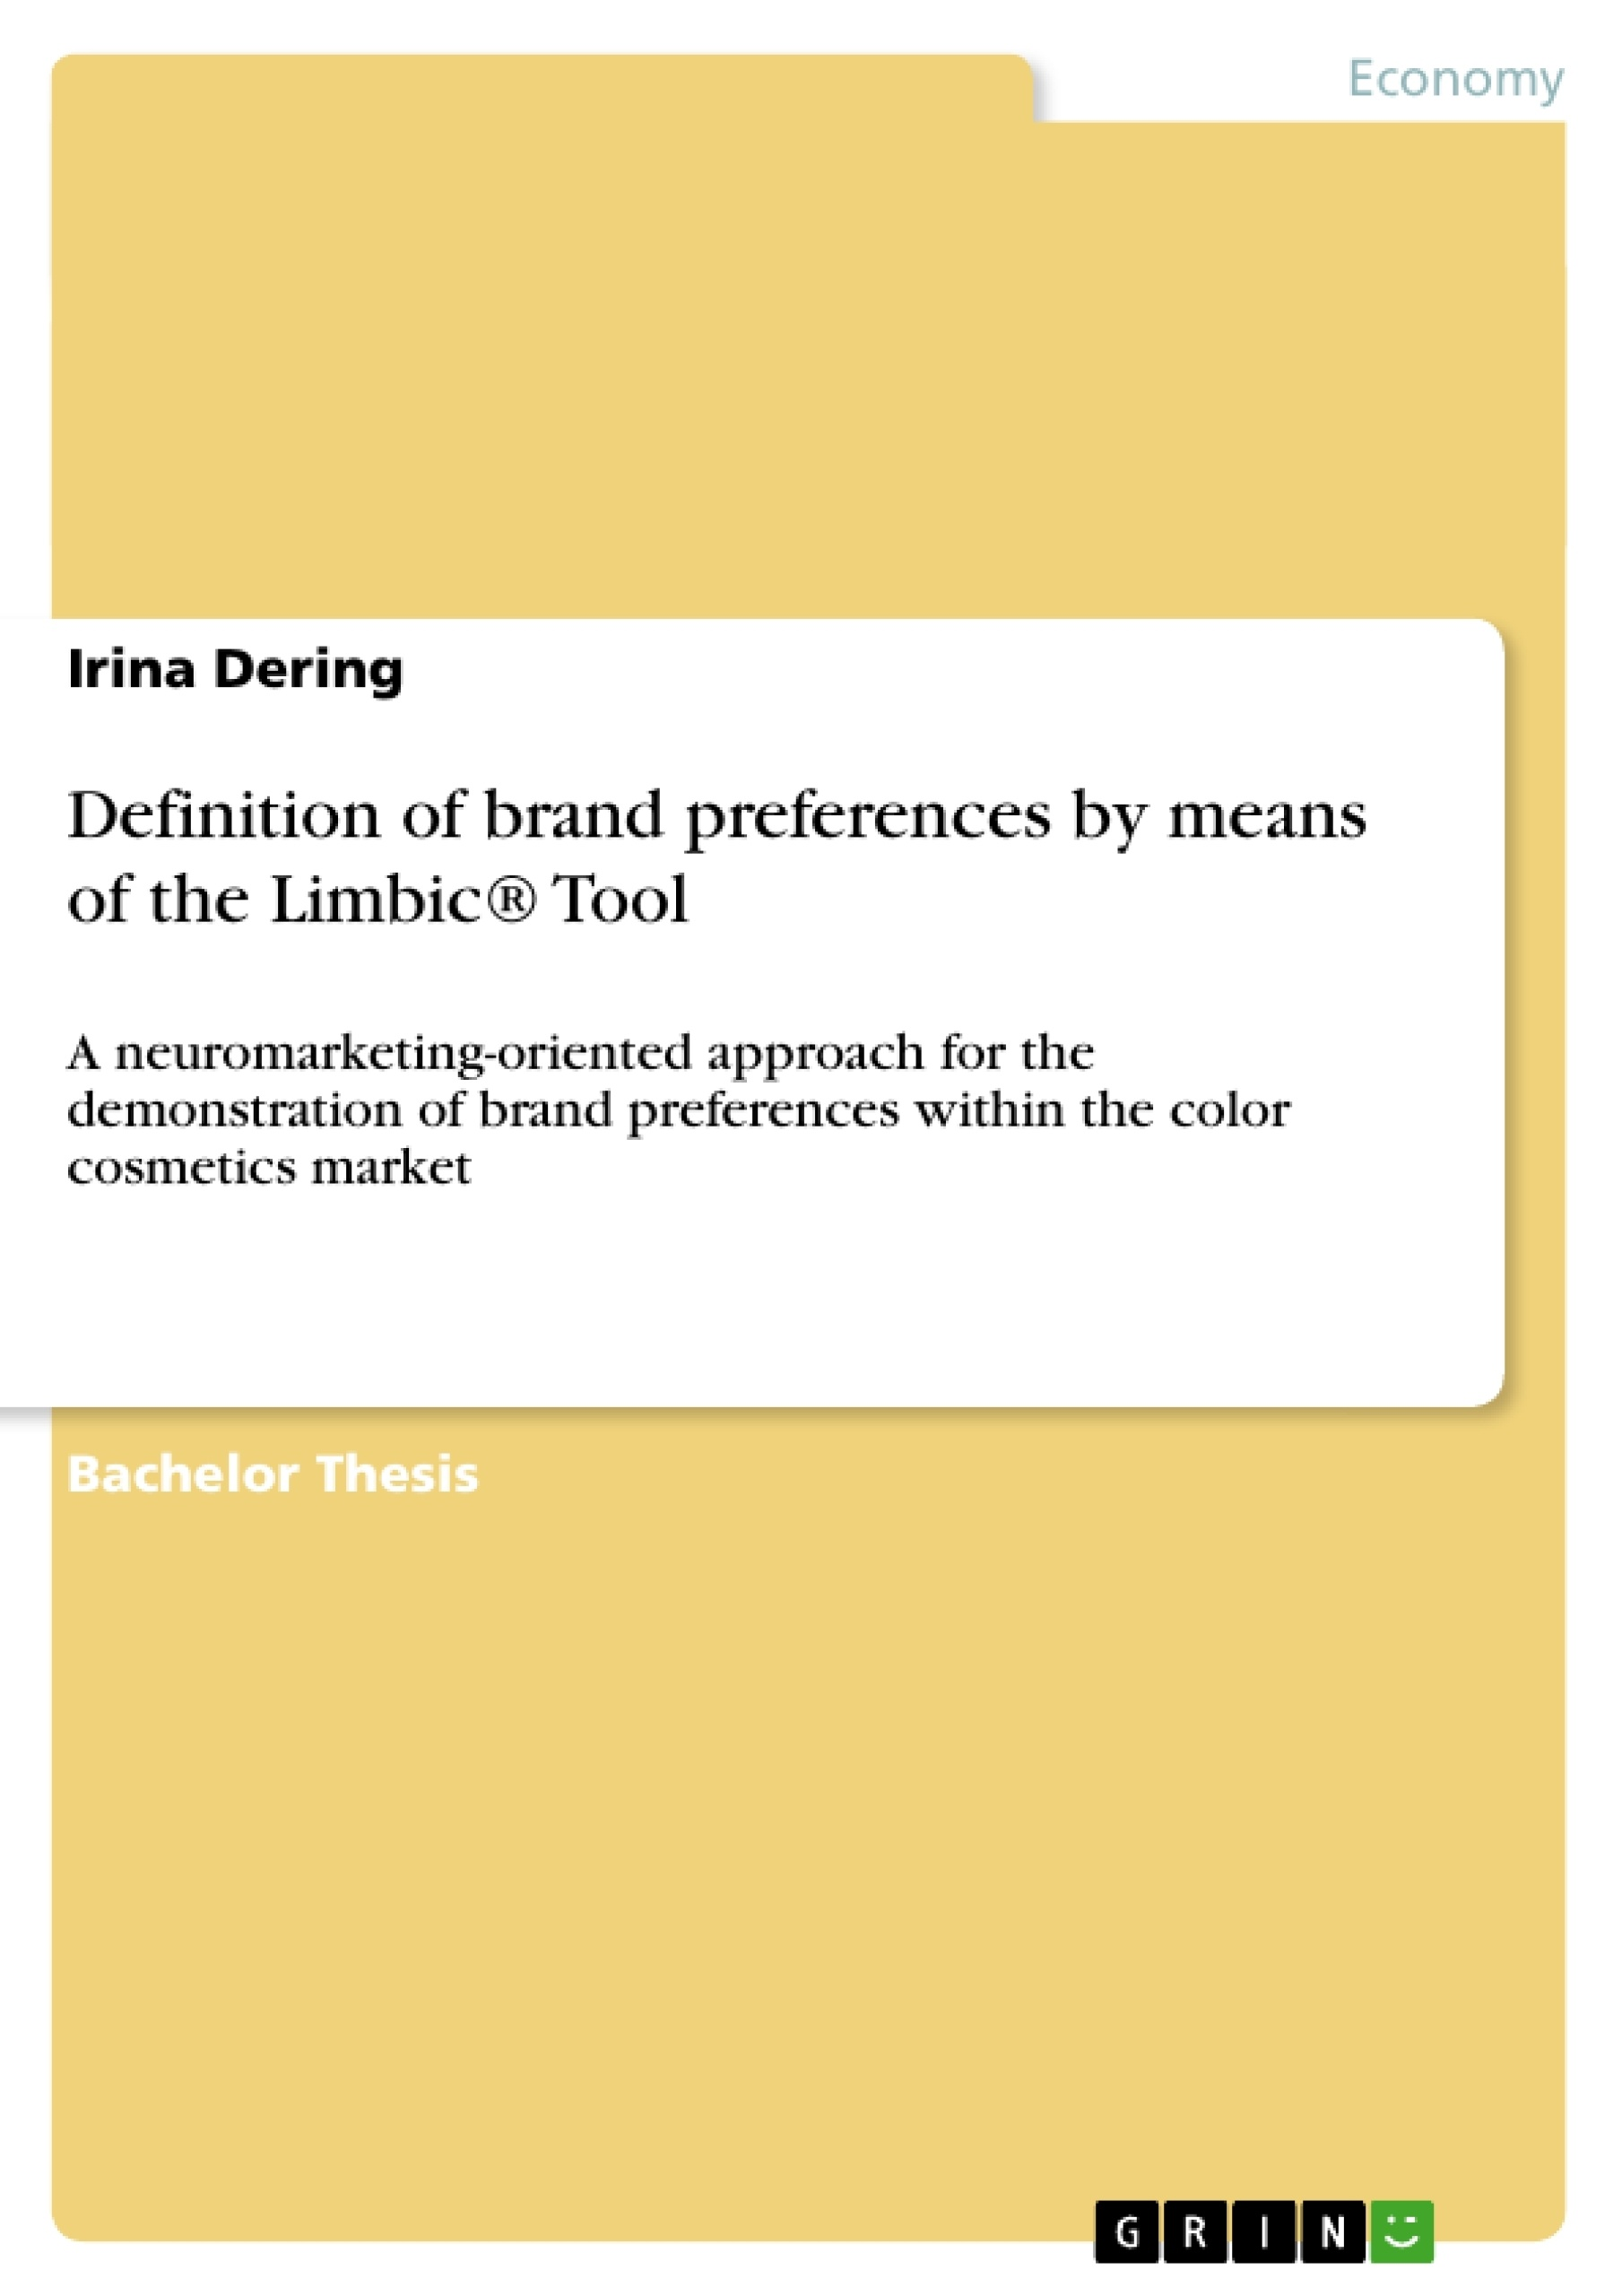 Definition of brand preferences by means of the limbic for Bachelor definition